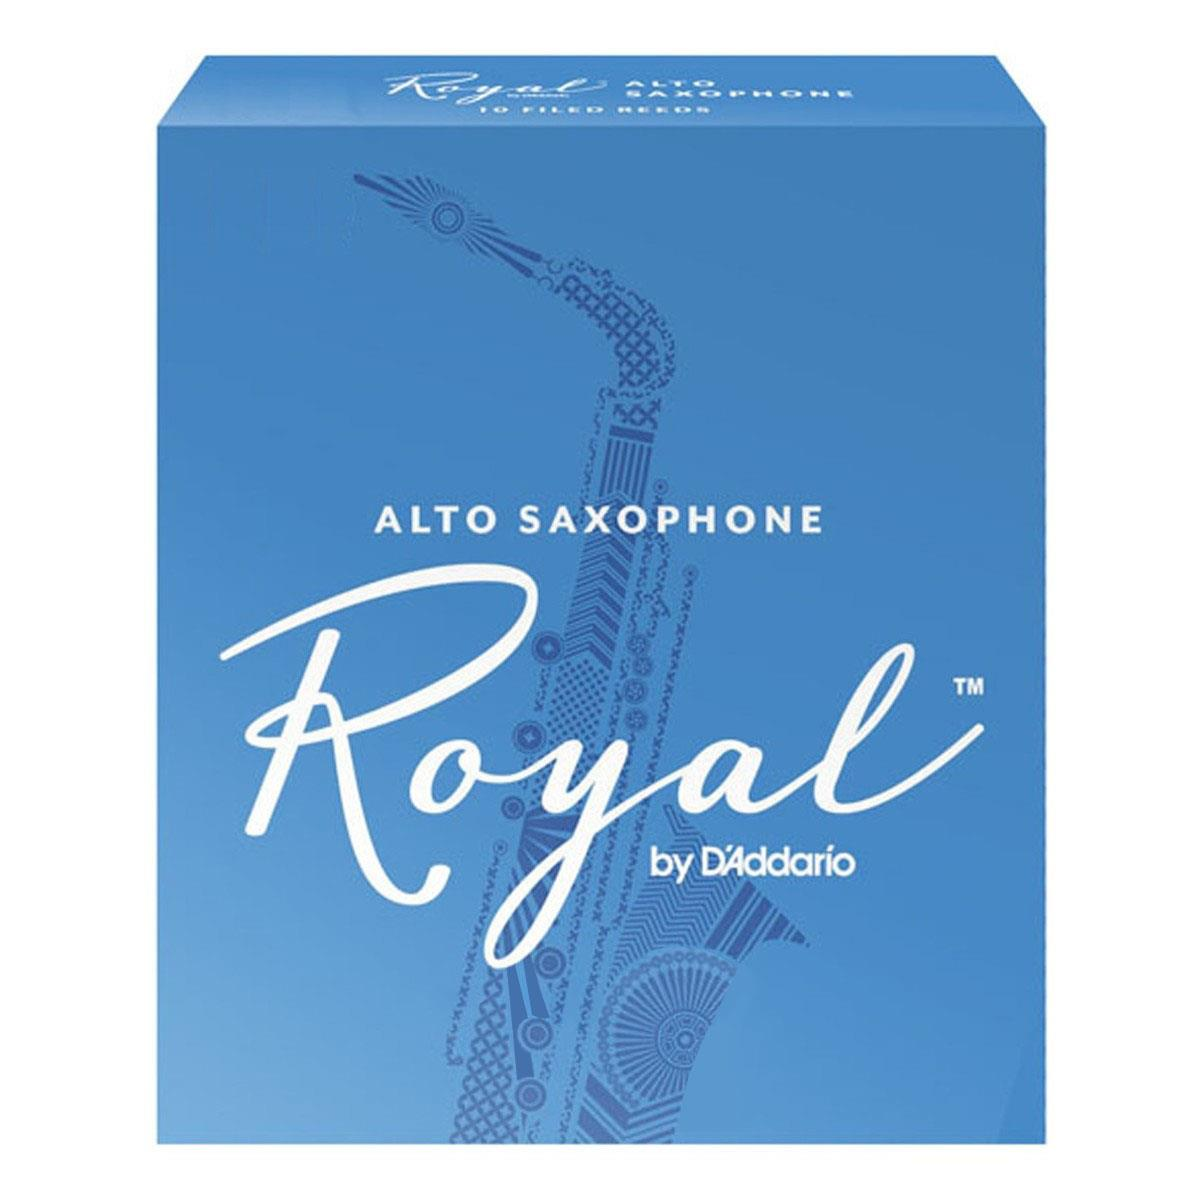 Image of D'Addario Woodwind Royal RJB1020 Alto Sax Reeds Strength 2 10-pack 0046716532954